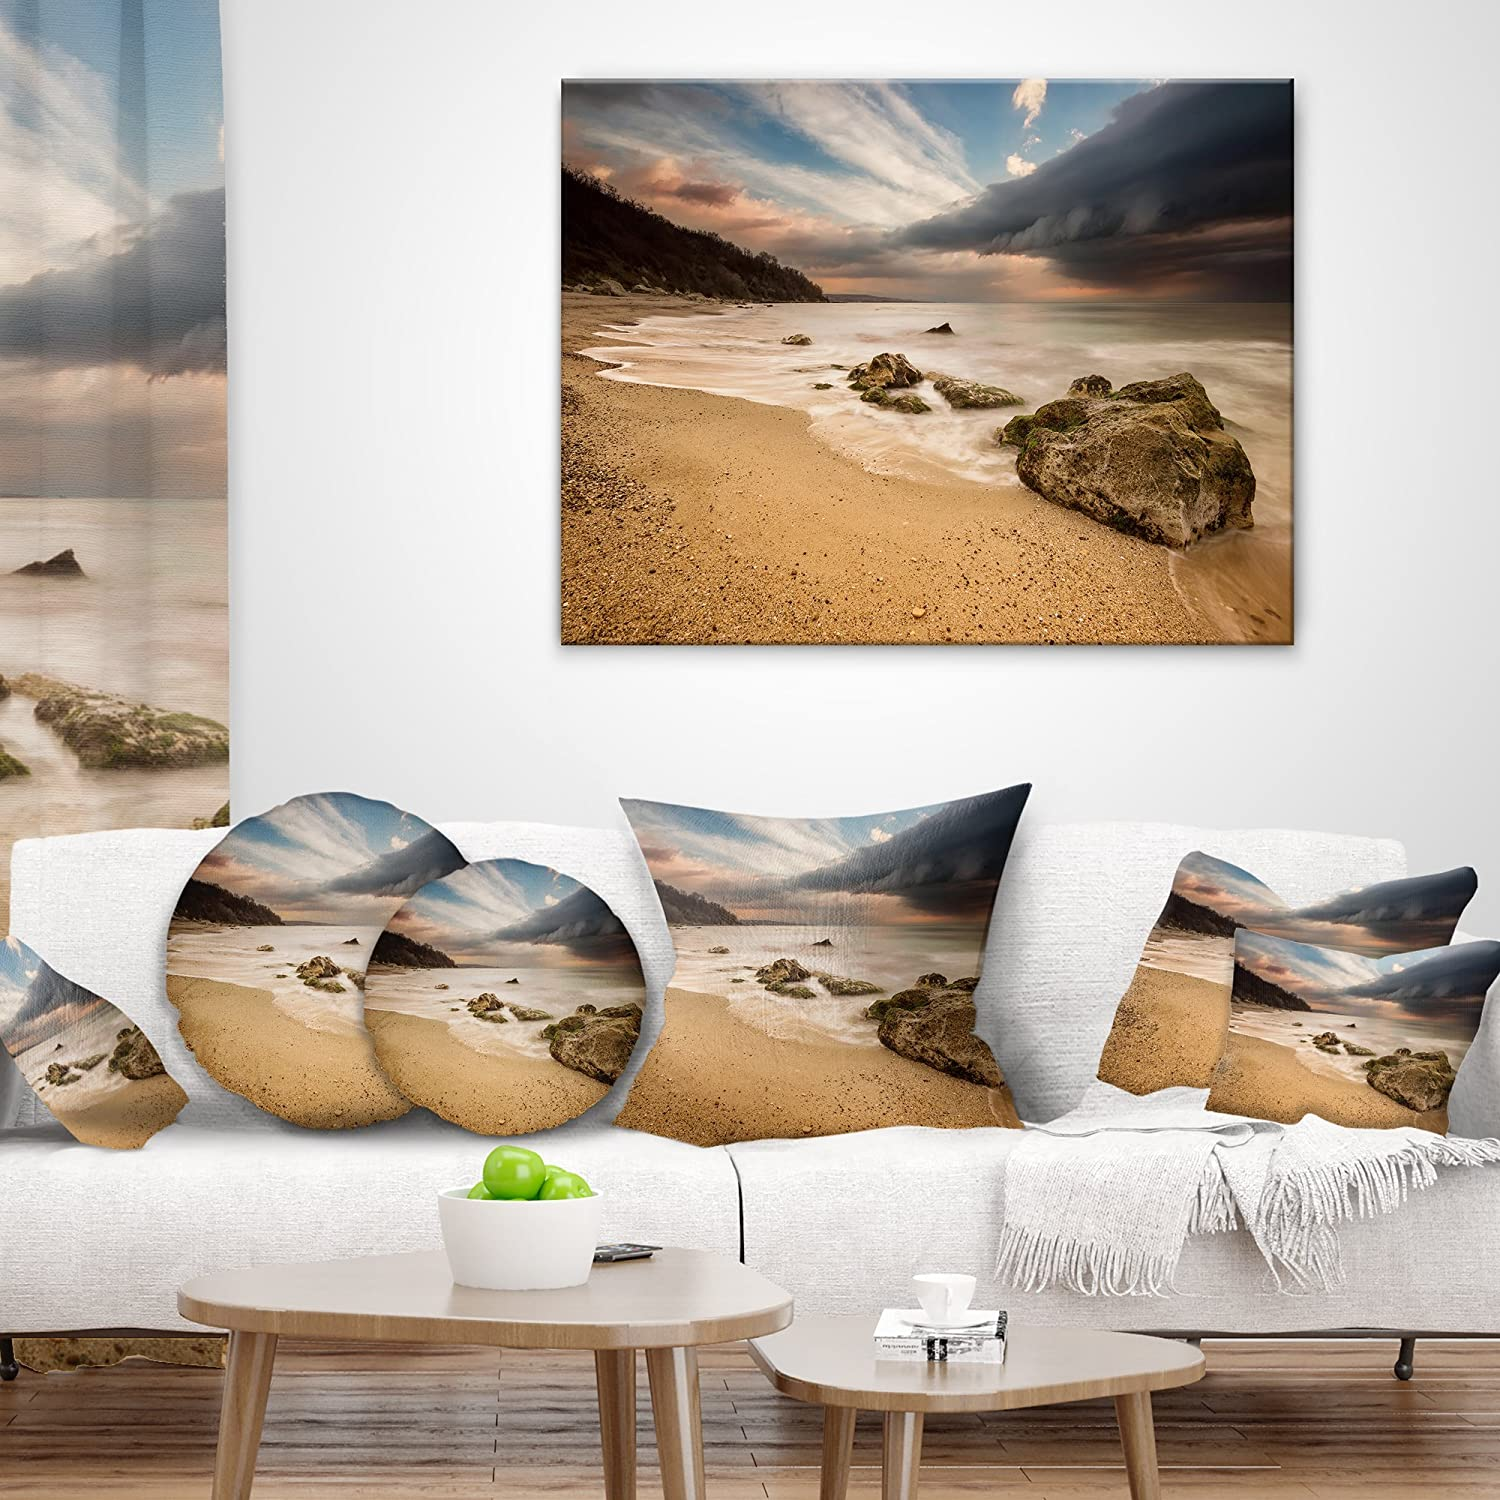 Designart CU10635-18-18 Exotic Seashore with White Waves Beach Photo Cushion Cover for Living Room Sofa Throw Pillow 18 in x 18 in in Insert Printed On Both Side